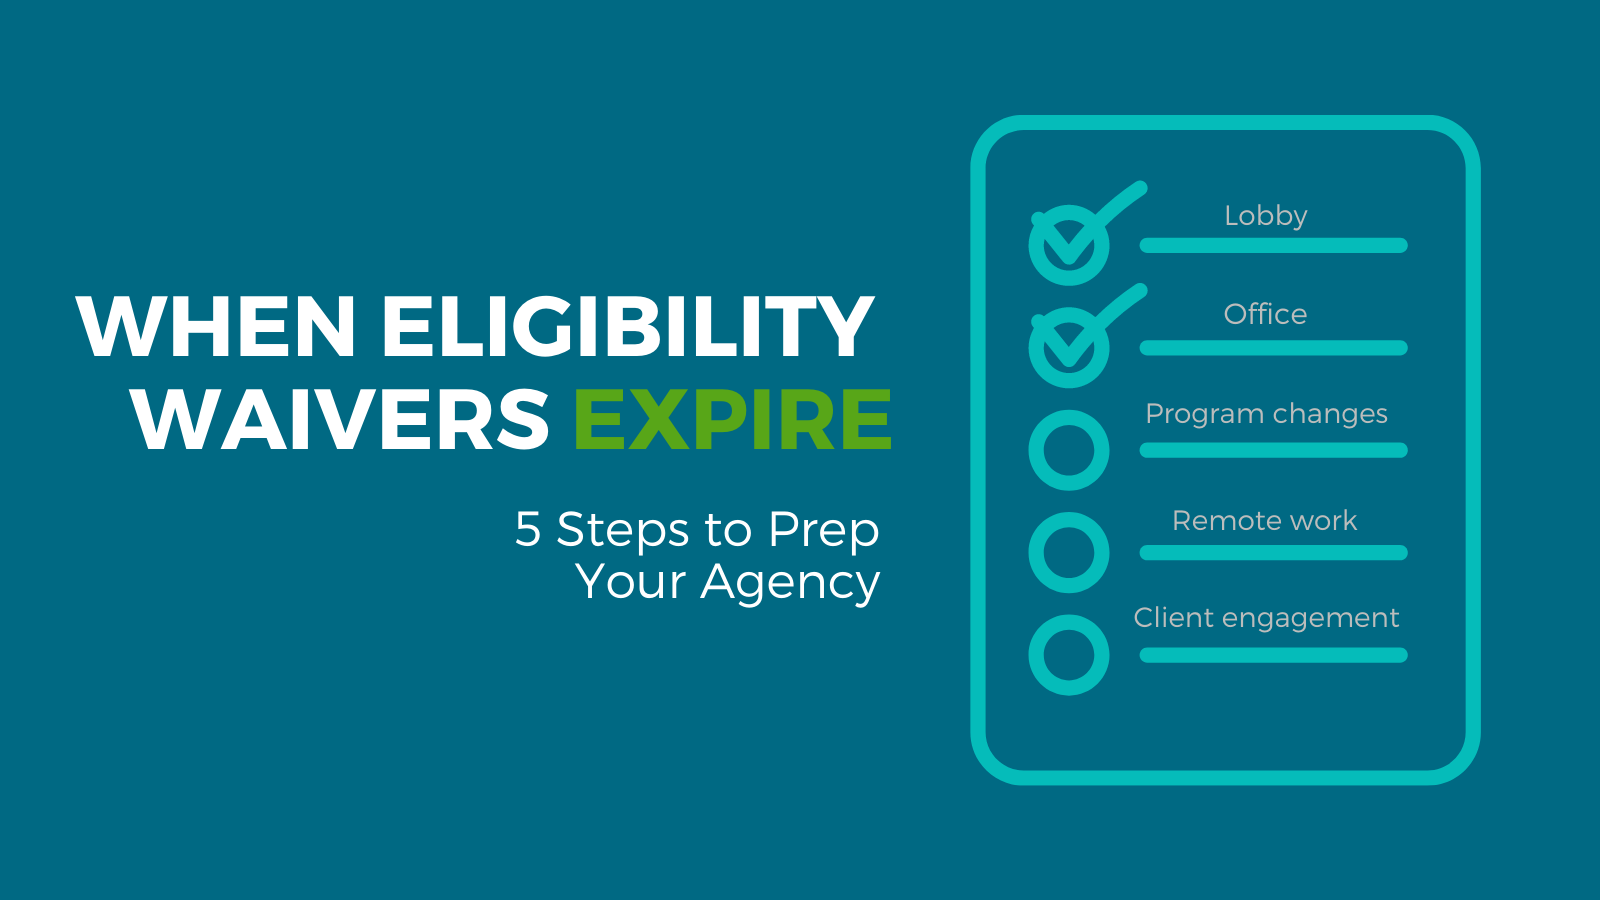 When Eligibility Waivers Expire: 5 Steps to Prep Your Agency